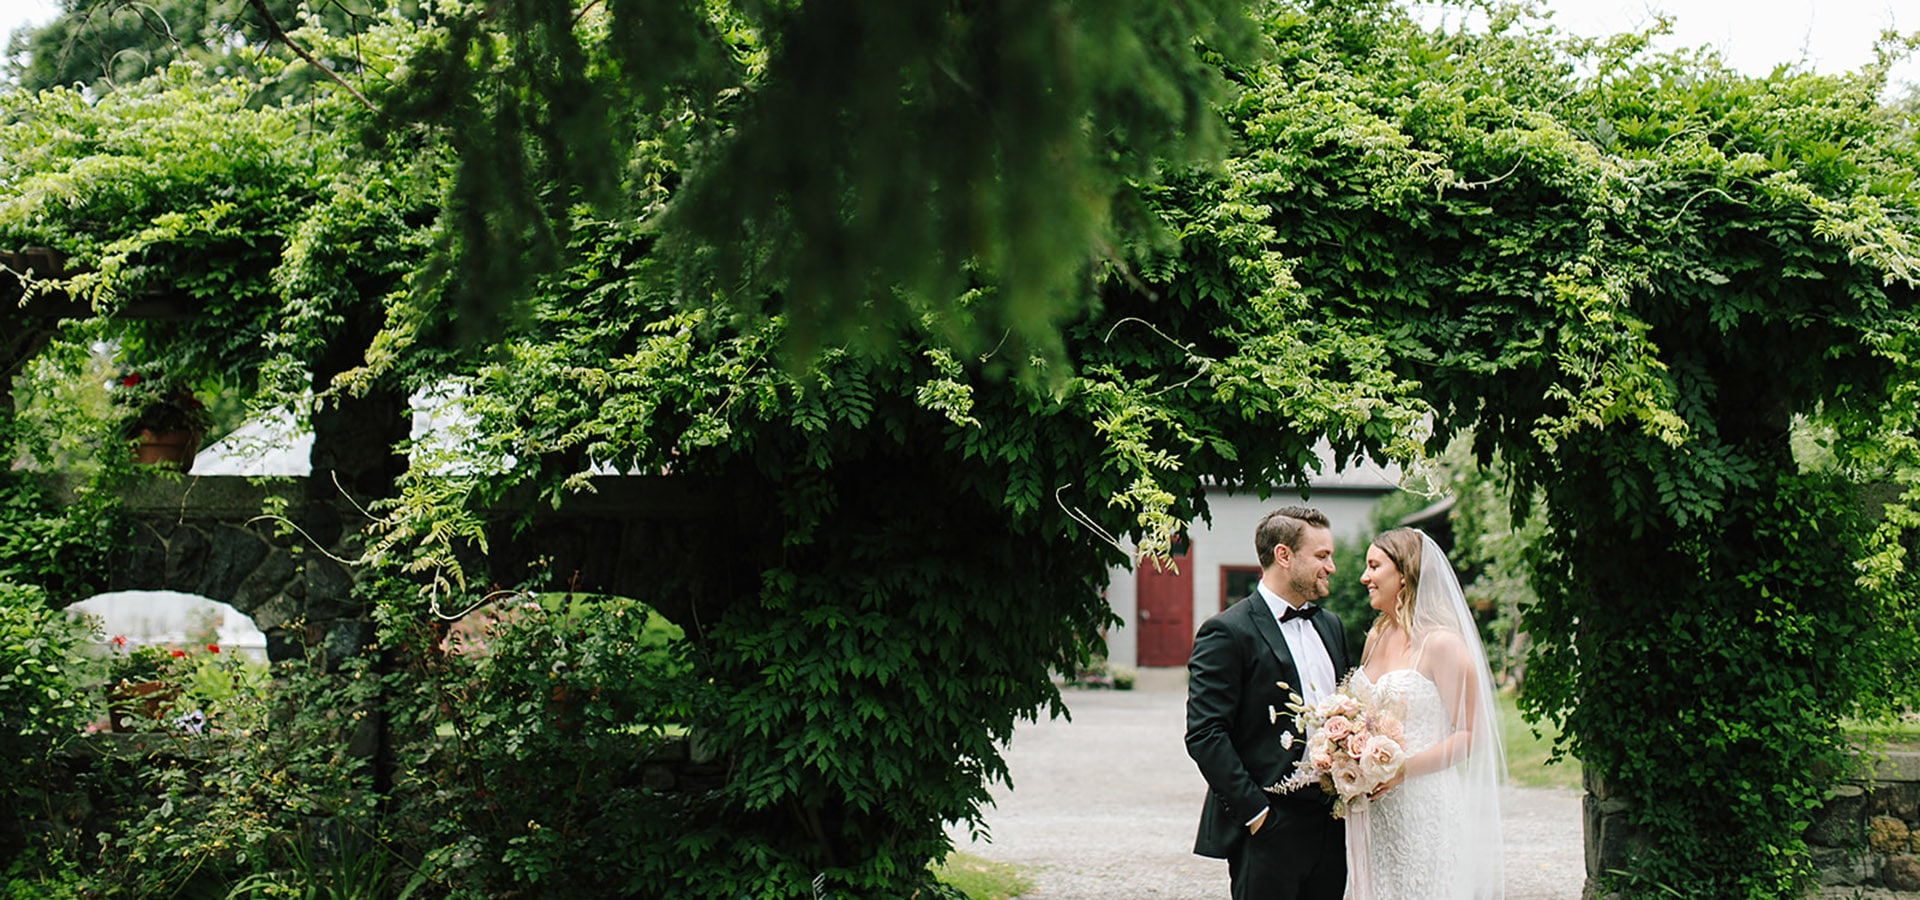 Hero image for Jenna and Rob's Chic Wedding at the Fermenting Cellar